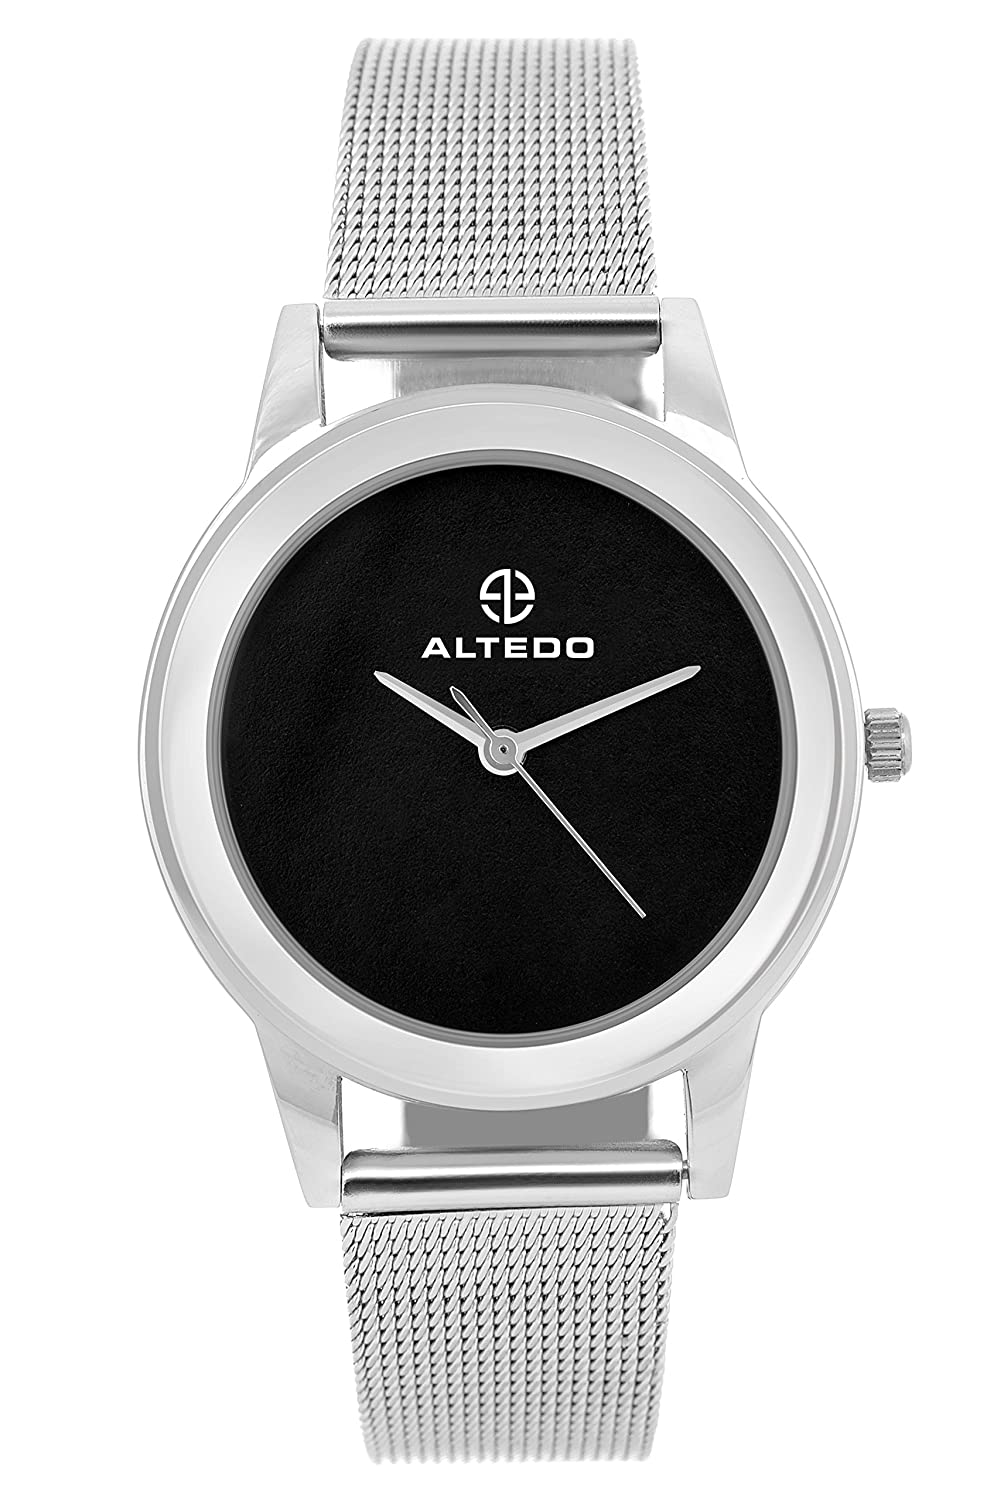 Buy Altedo Analog Black Dial Women s Watch - Eternal Series Online at Low  Prices in India - Amazon.in f98adc3b7b